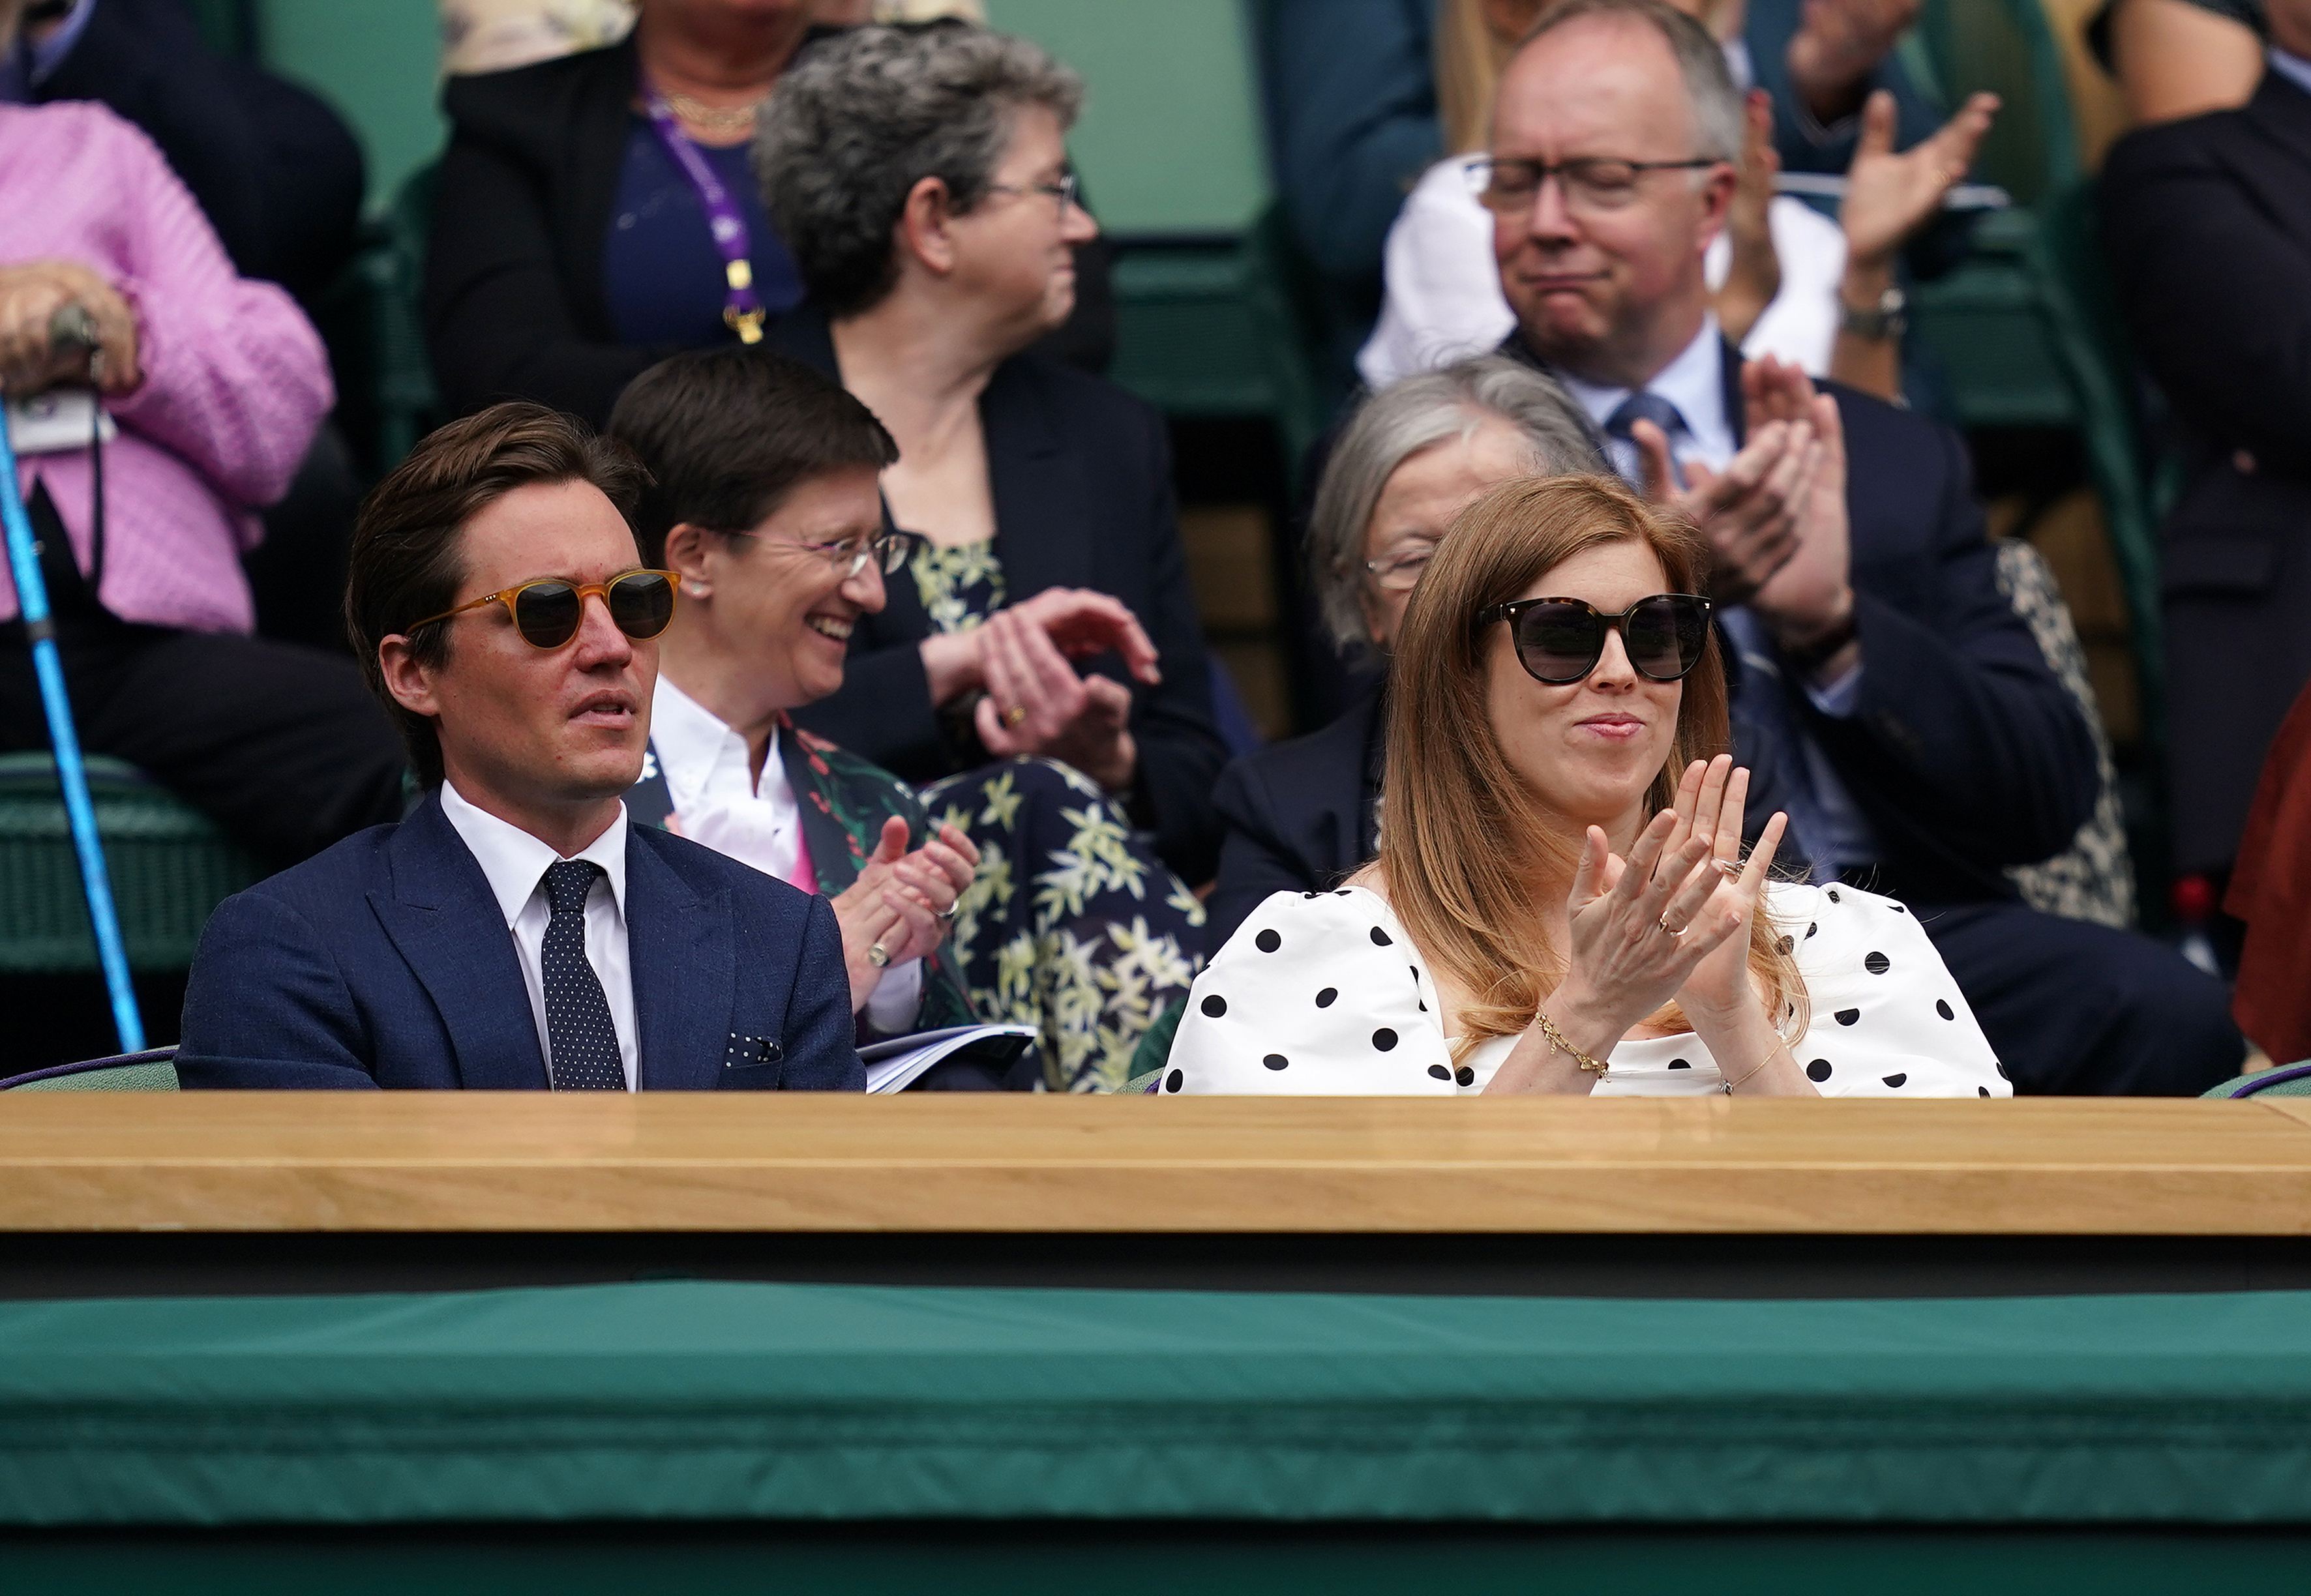 Wimbledon 2021 - Day Ten - The All England Lawn Tennis and Croquet Club. Edoardo Mapelli Mozzi, Princess Beatrice and Annabelle Galletley in the Royal Box at Centre Court on day ten of Wimbledon at The All England Lawn Tennis and Croquet Club, Wimbledon. Picture date: Thursday July 8, 2021. See PA story TENNIS Wimbledon. Photo credit should read: John Walton/PA Wire RESTRICTIONS: Editorial use only. No commercial use without prior written consent of the AELTC. Still image use only - no moving images to emulate broadcast. No superimposing or removal of sponsor/ad logos. URN:60819919 (Press Association via AP Images)